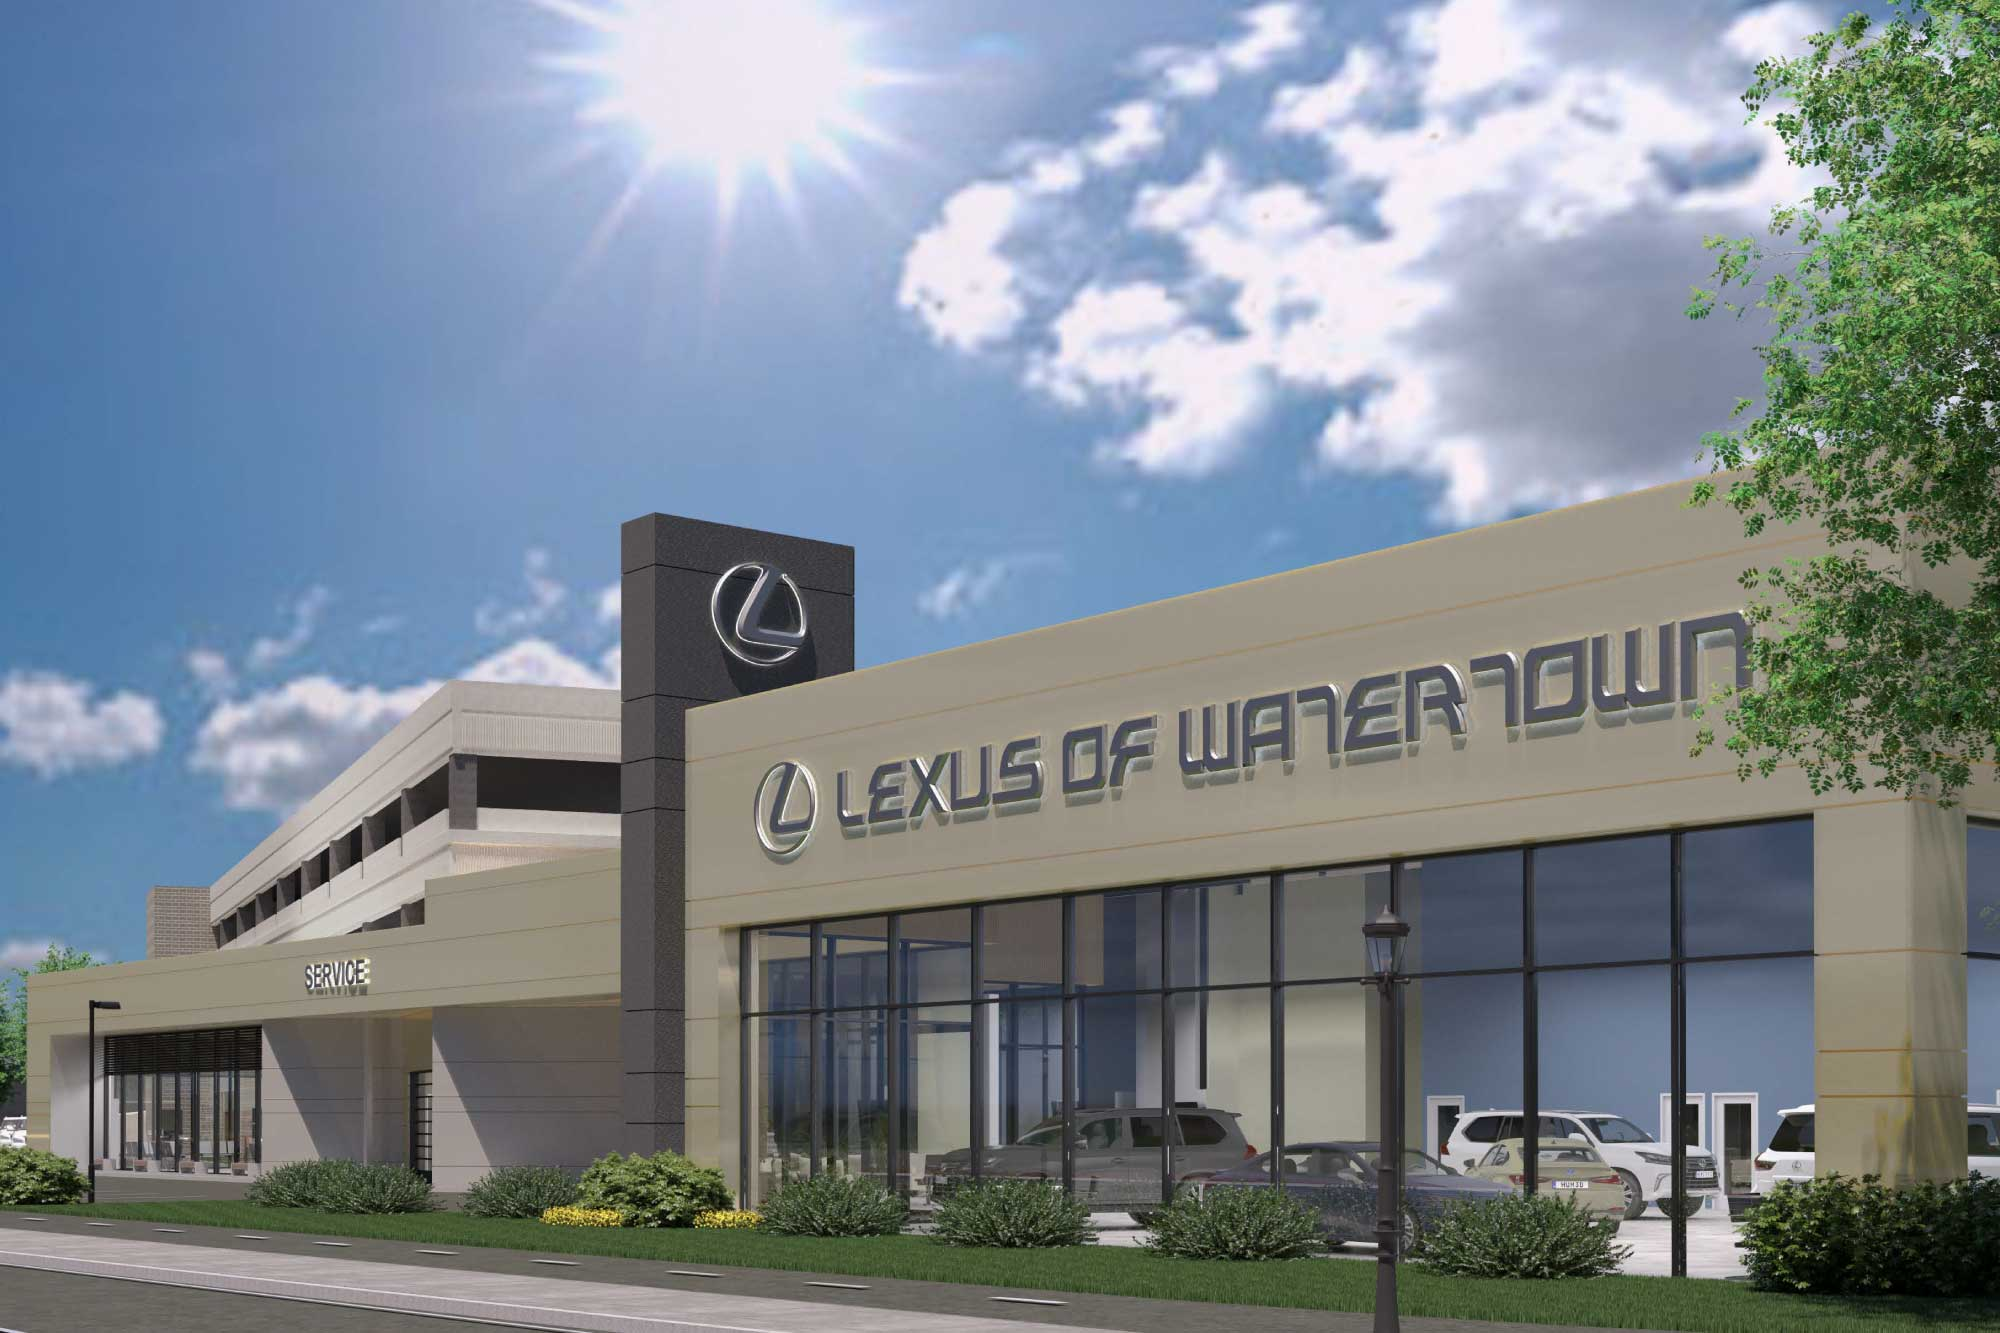 Lexus-of-Watertown Maugel Architects